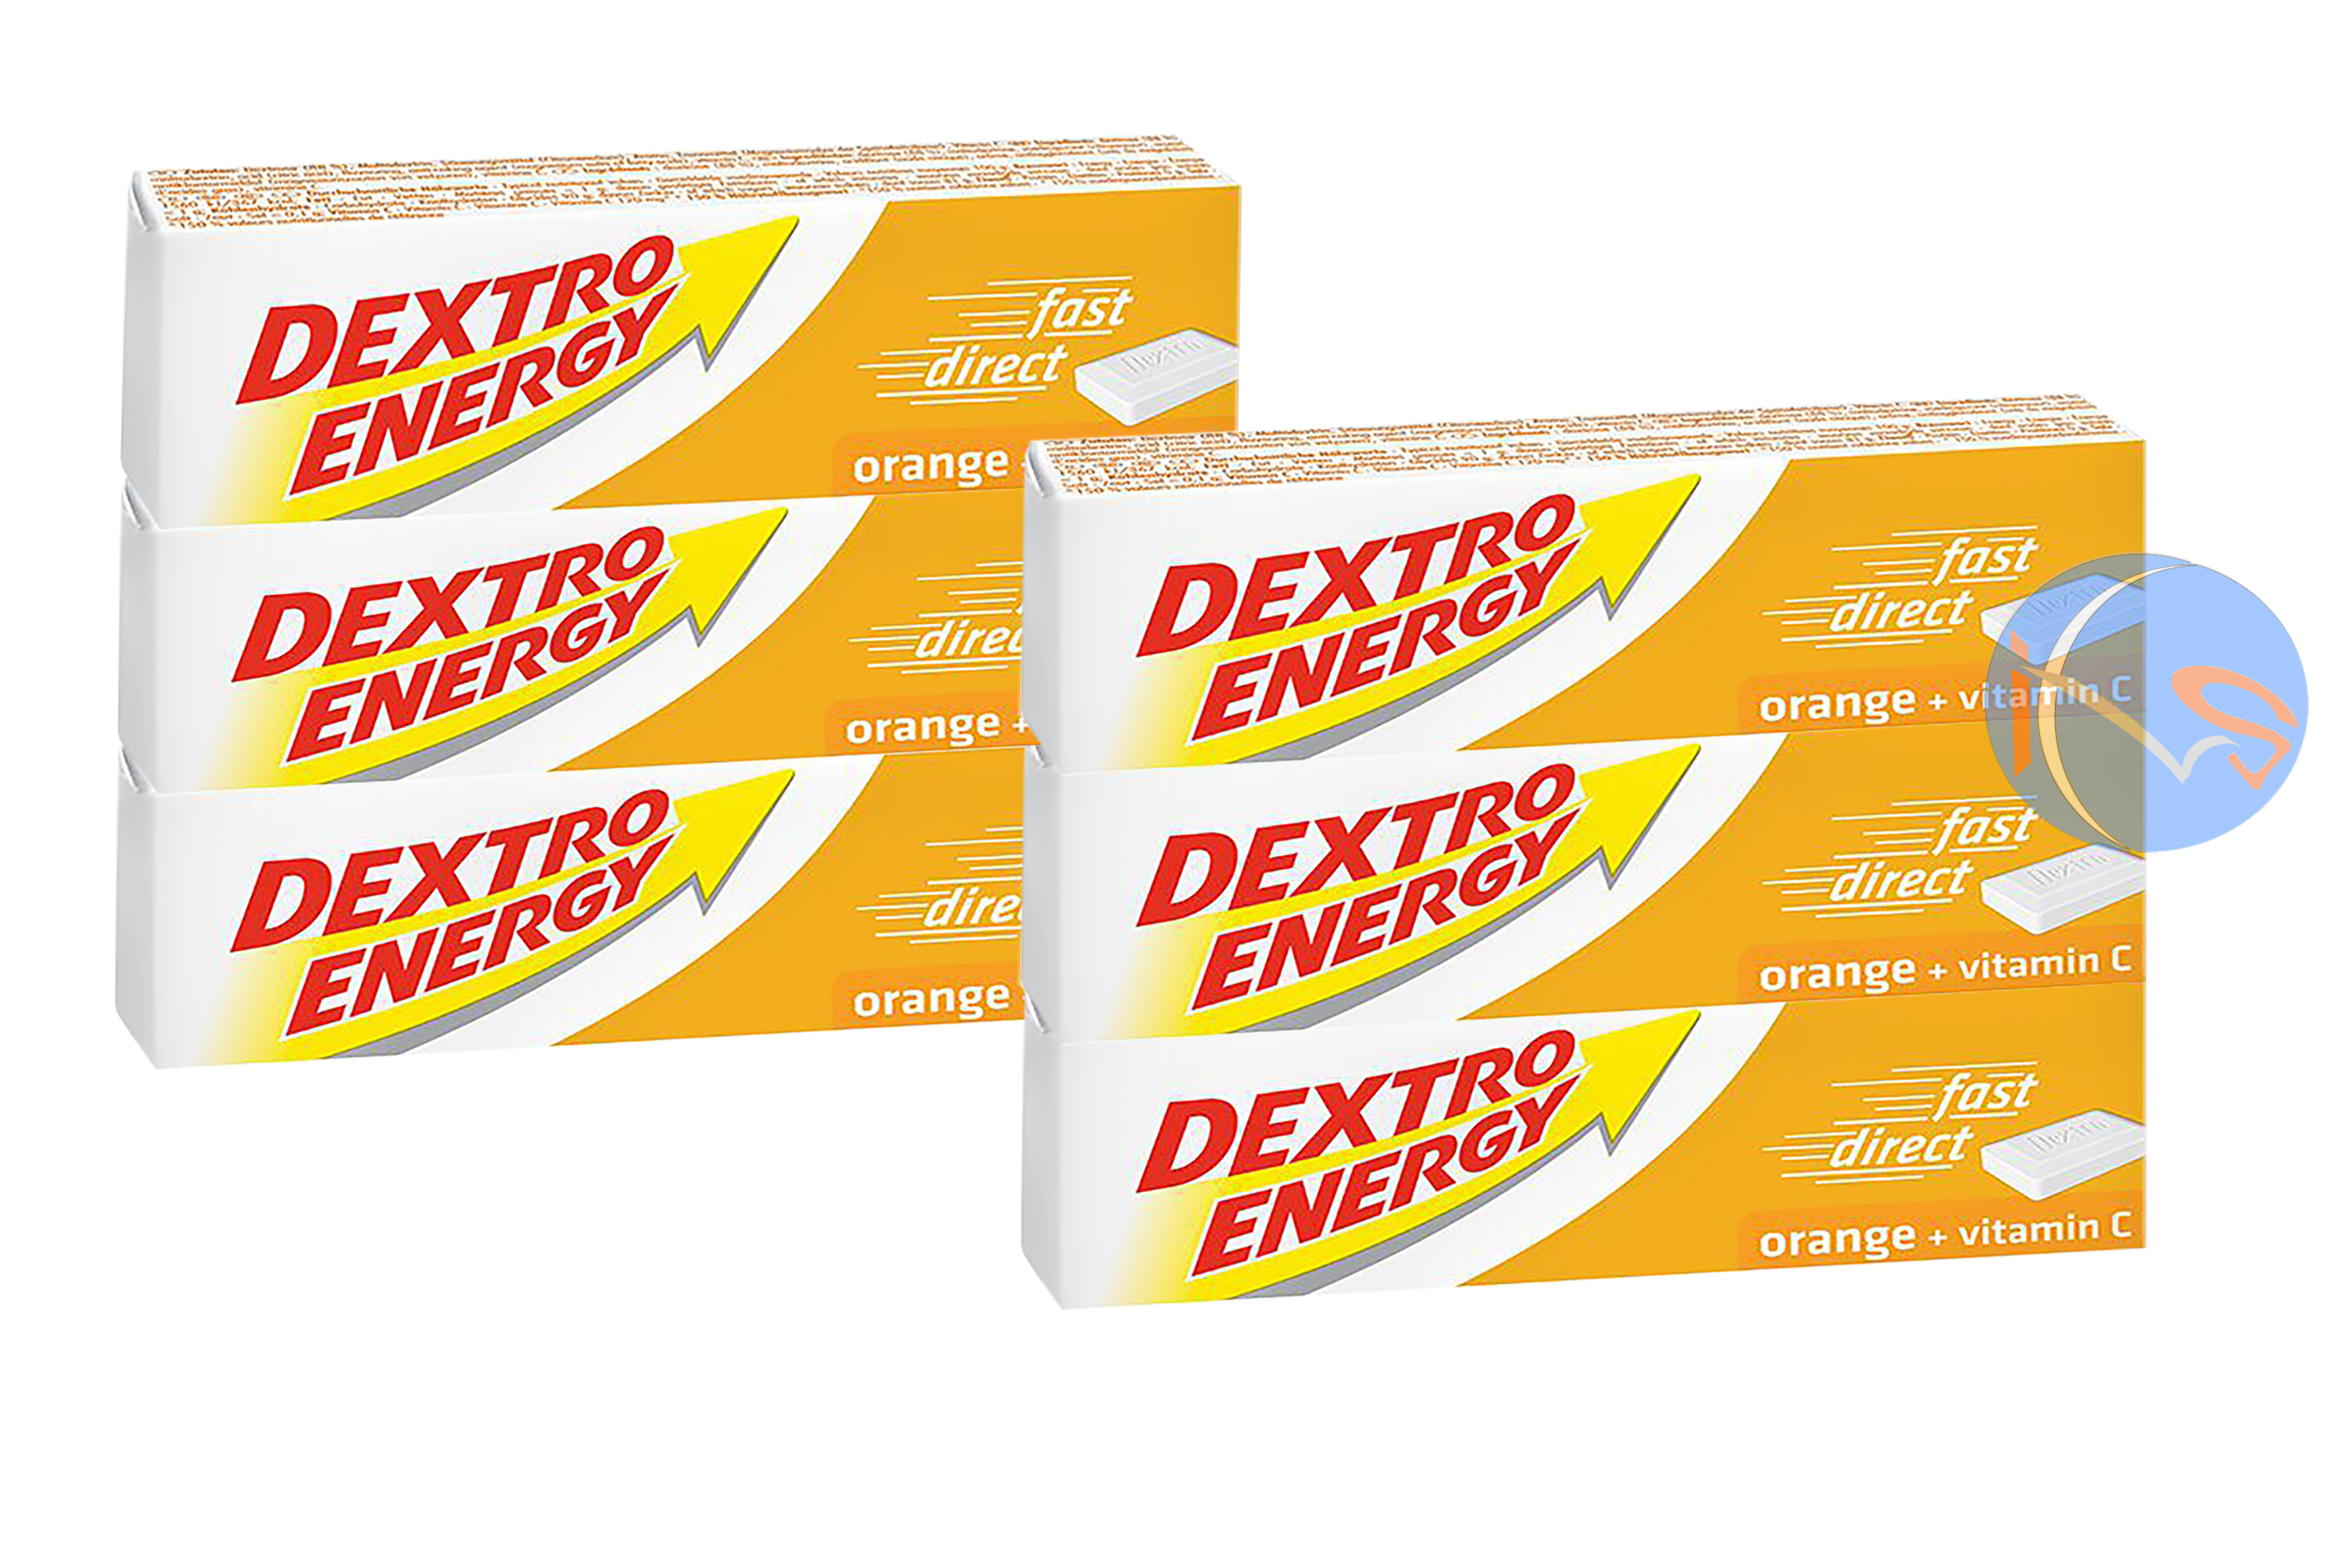 dextro energy tablets how to take